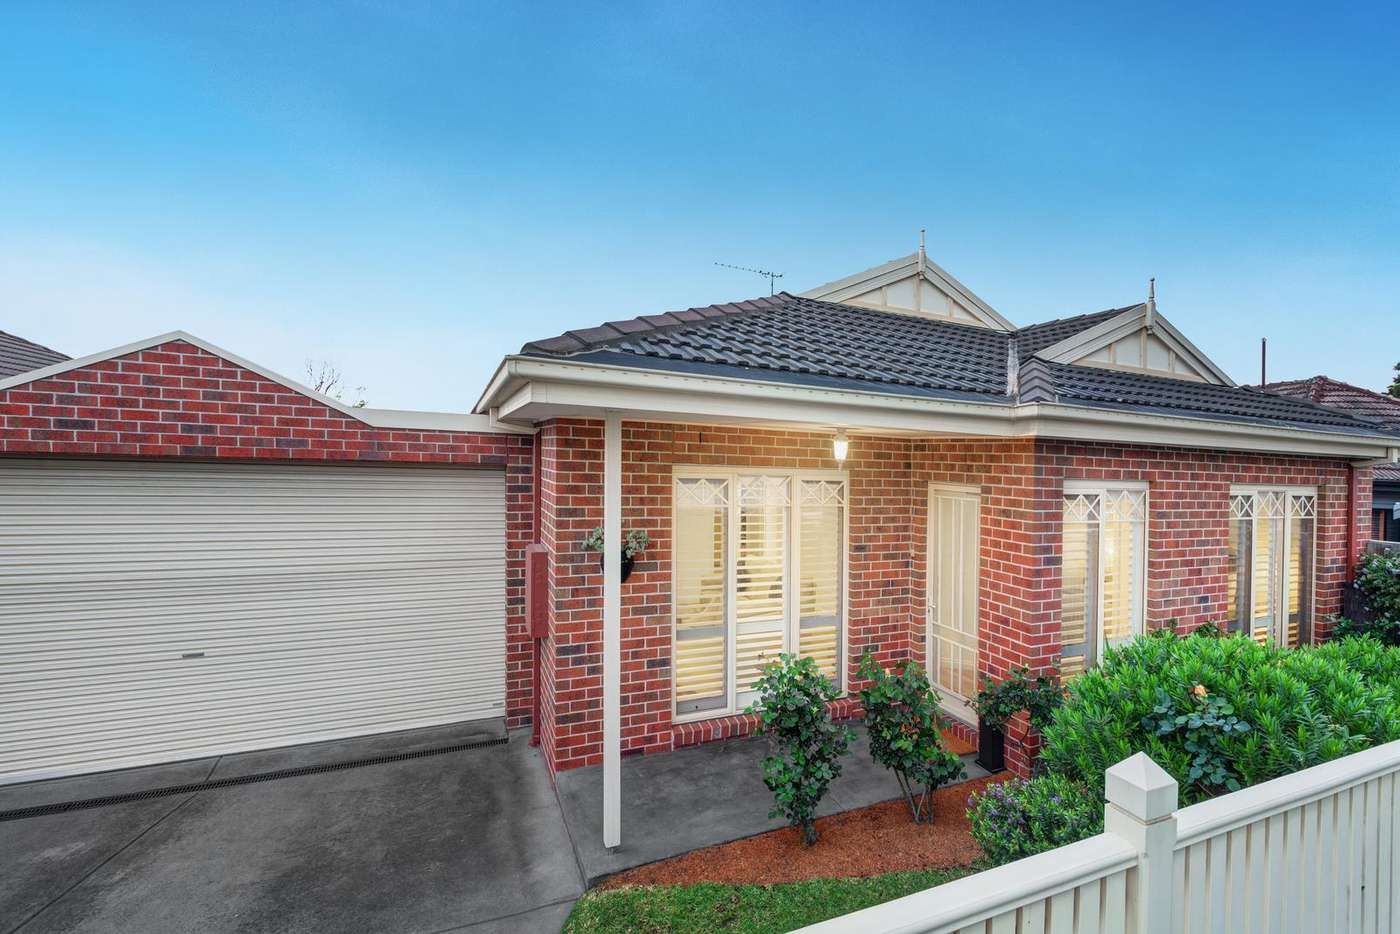 Main view of Homely unit listing, 39 Werder Street, Box Hill North VIC 3129